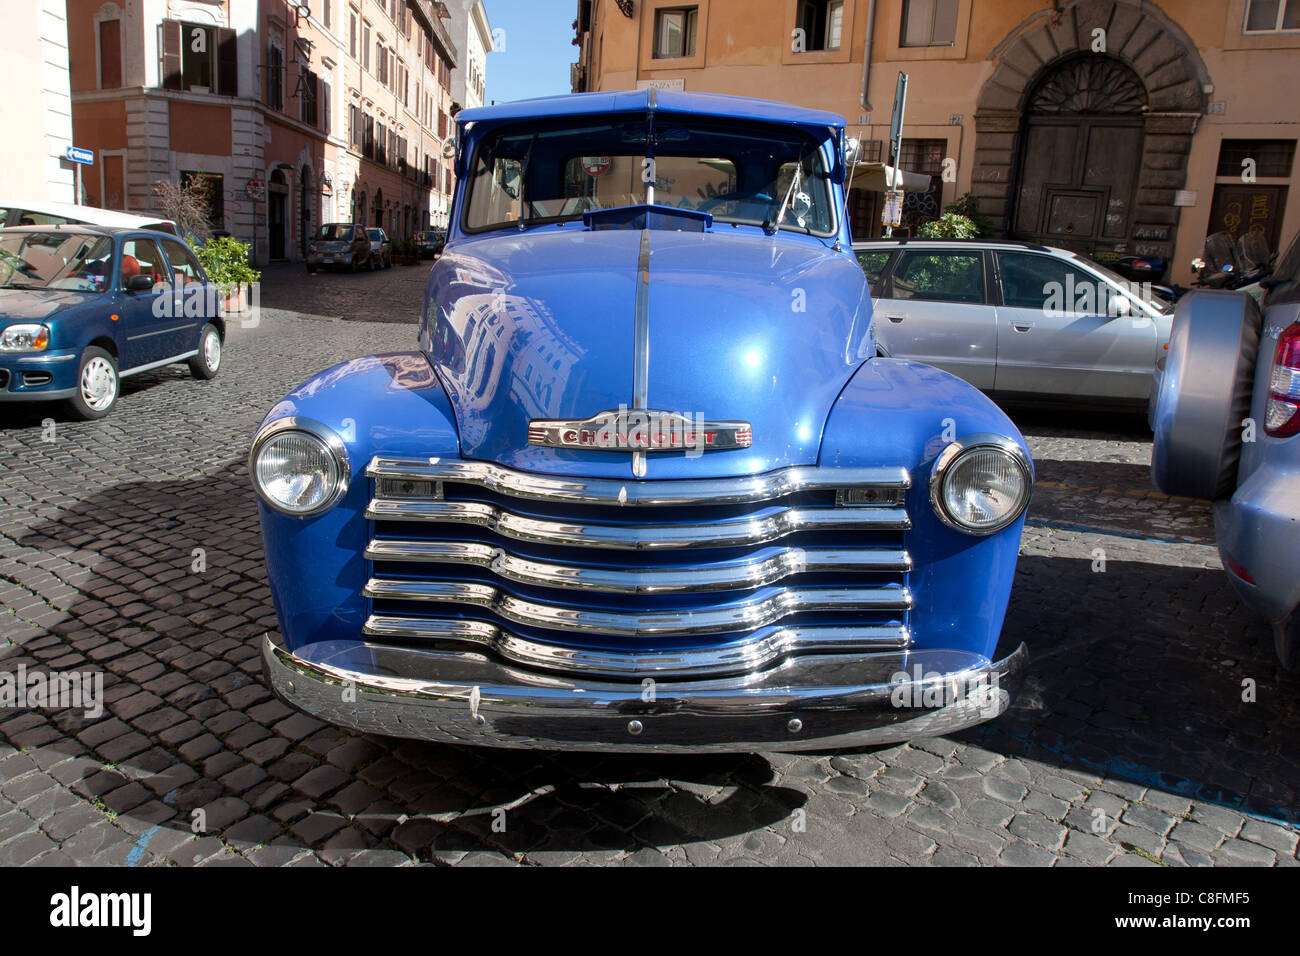 "classic car old ""1950 Chevrolet Pickup truck parked in Trastevere Rome Italy Stock Photo"